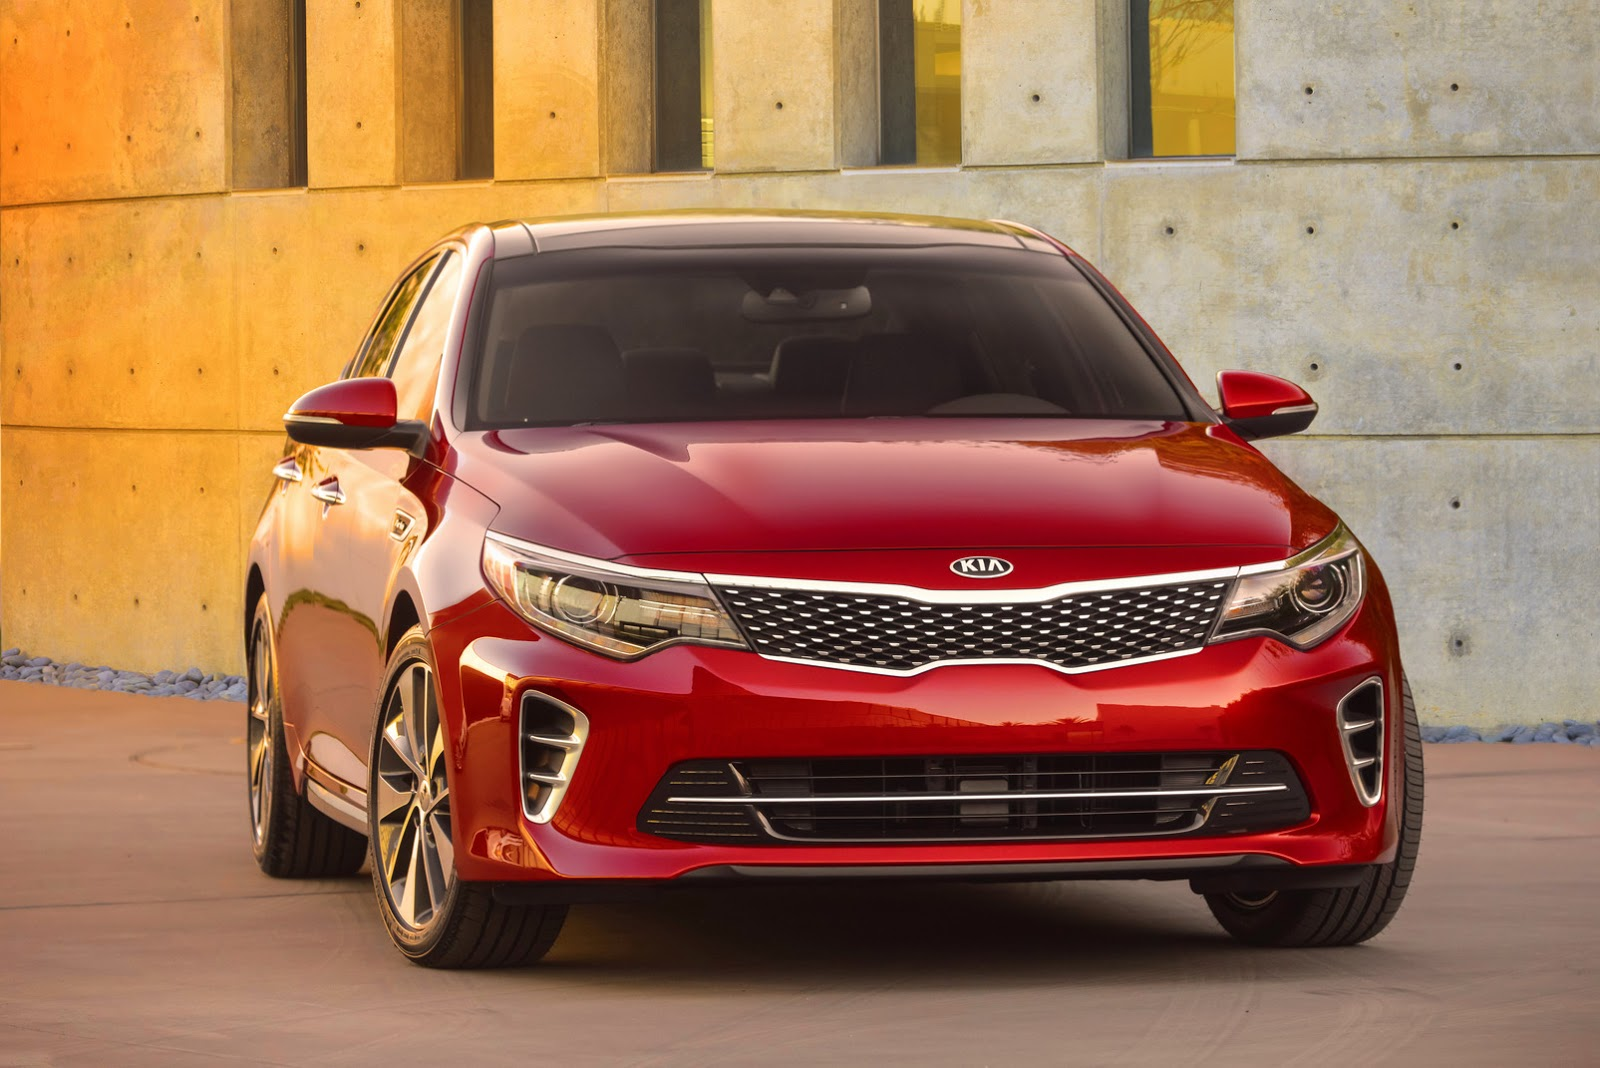 2015 - [Kia] Optima - Page 2 2016-Kia-Optima-Carscoops-Sedan1